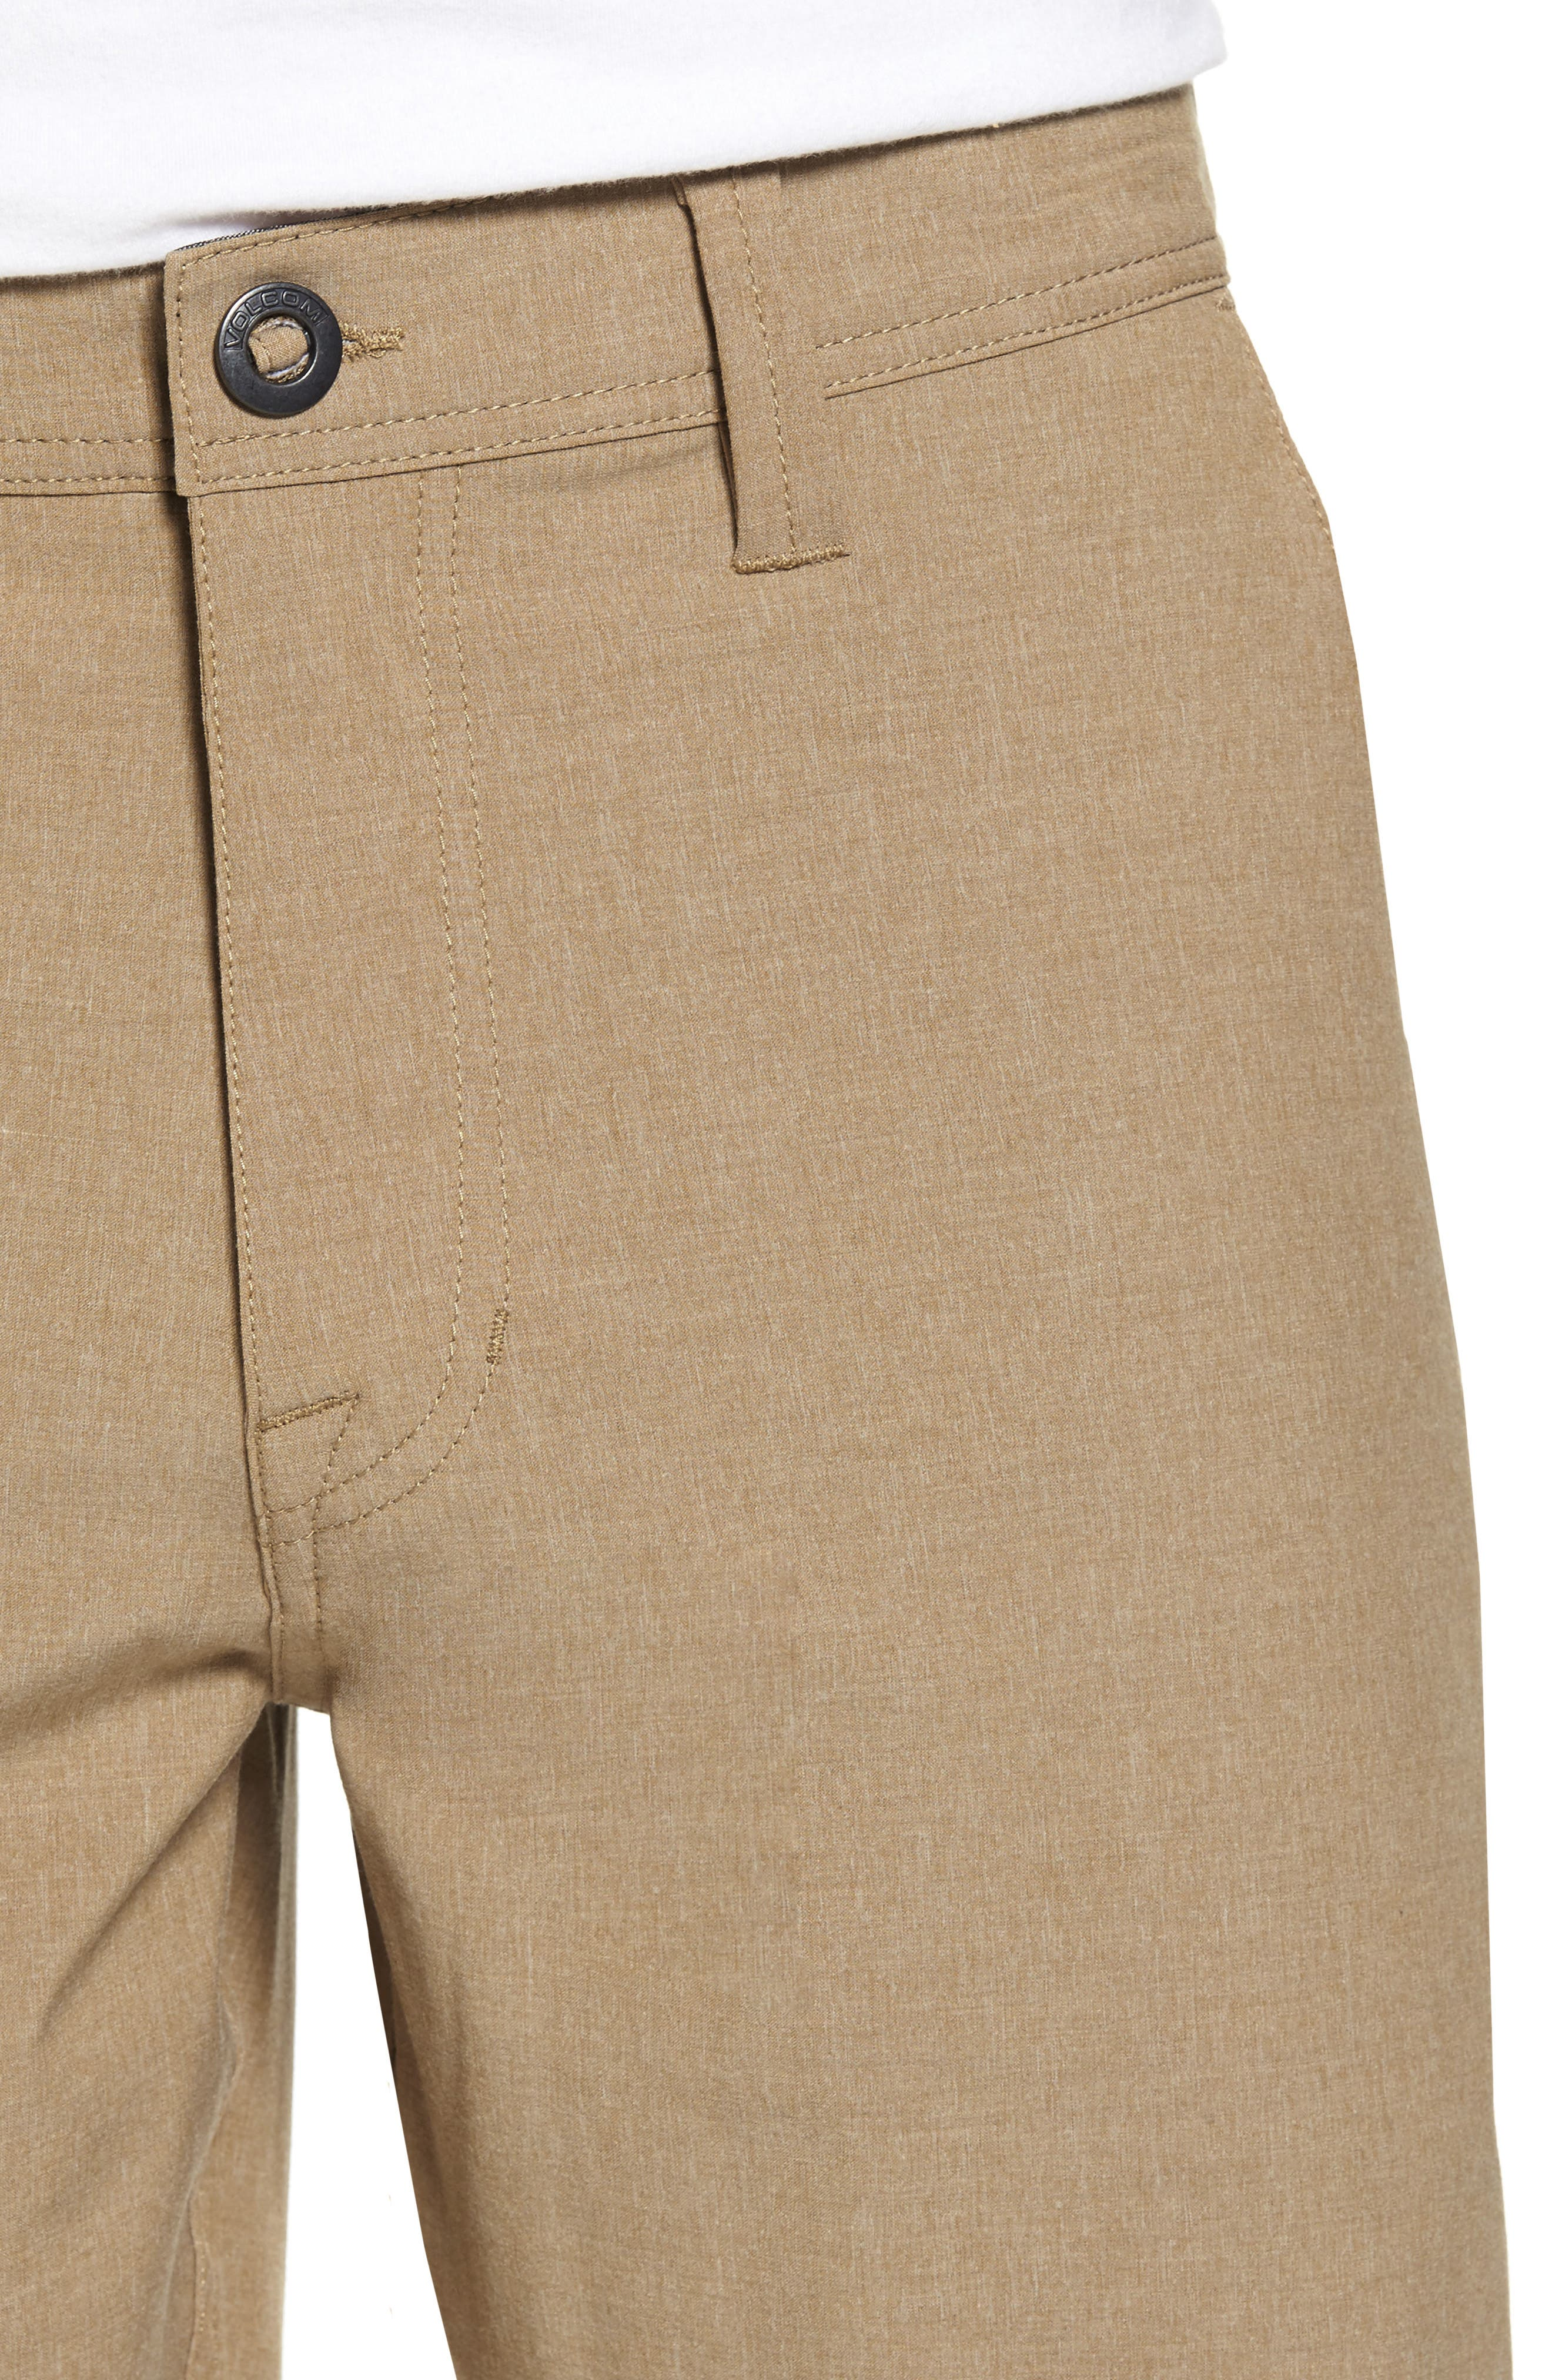 Hybrid Shorts,                             Alternate thumbnail 4, color,                             Beige